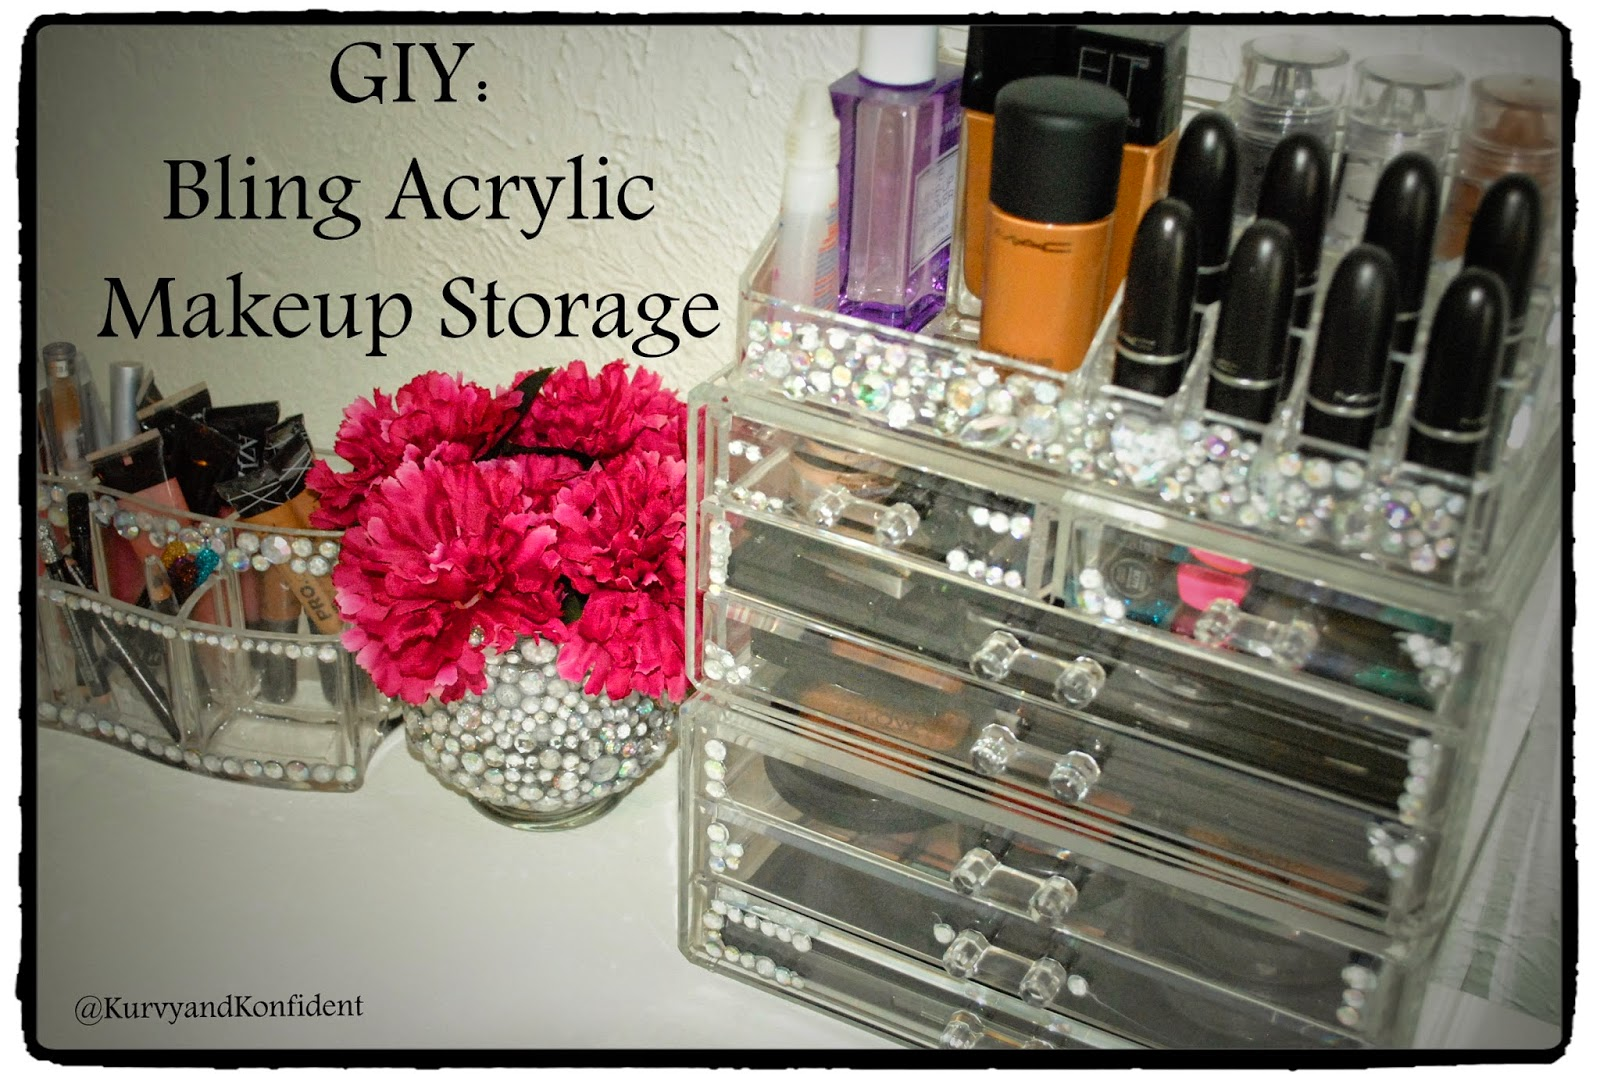 Kurvy konfident giy bling acrylic makeup storage in an effort to personalize my she space i have been doing a lot of diys do it yourself and giys glam it yourself again my money is very tight solutioingenieria Choice Image